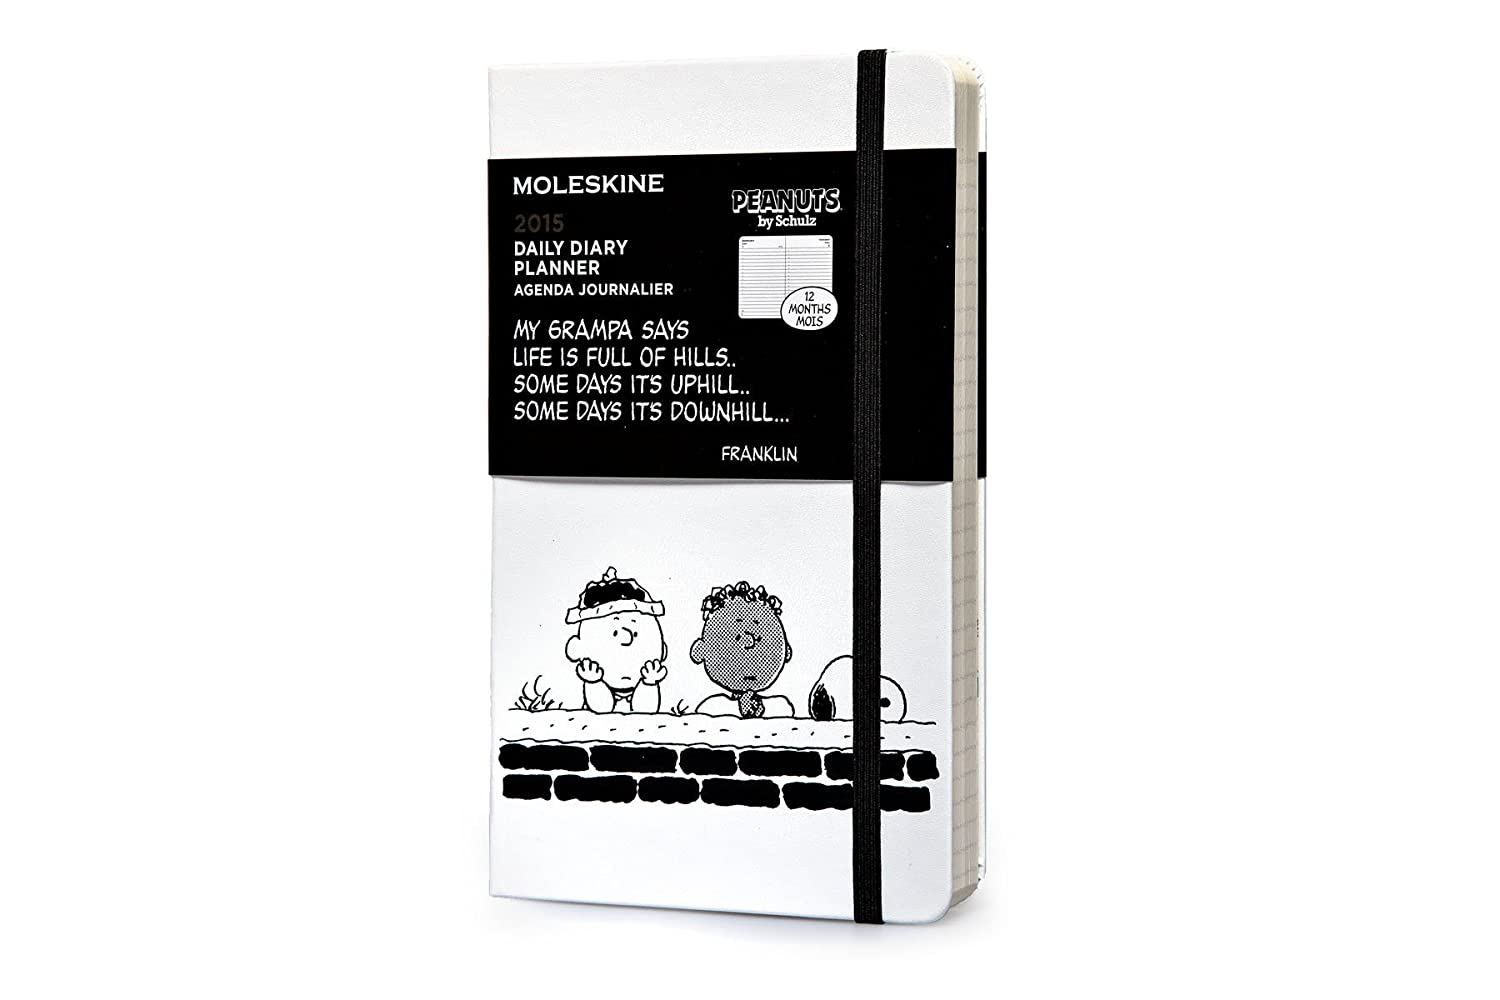 Moleskine 2015 Peanuts Limited Edition Daily Planner, 12 Month, Large, White, Hard Cover (5 x 8.25)